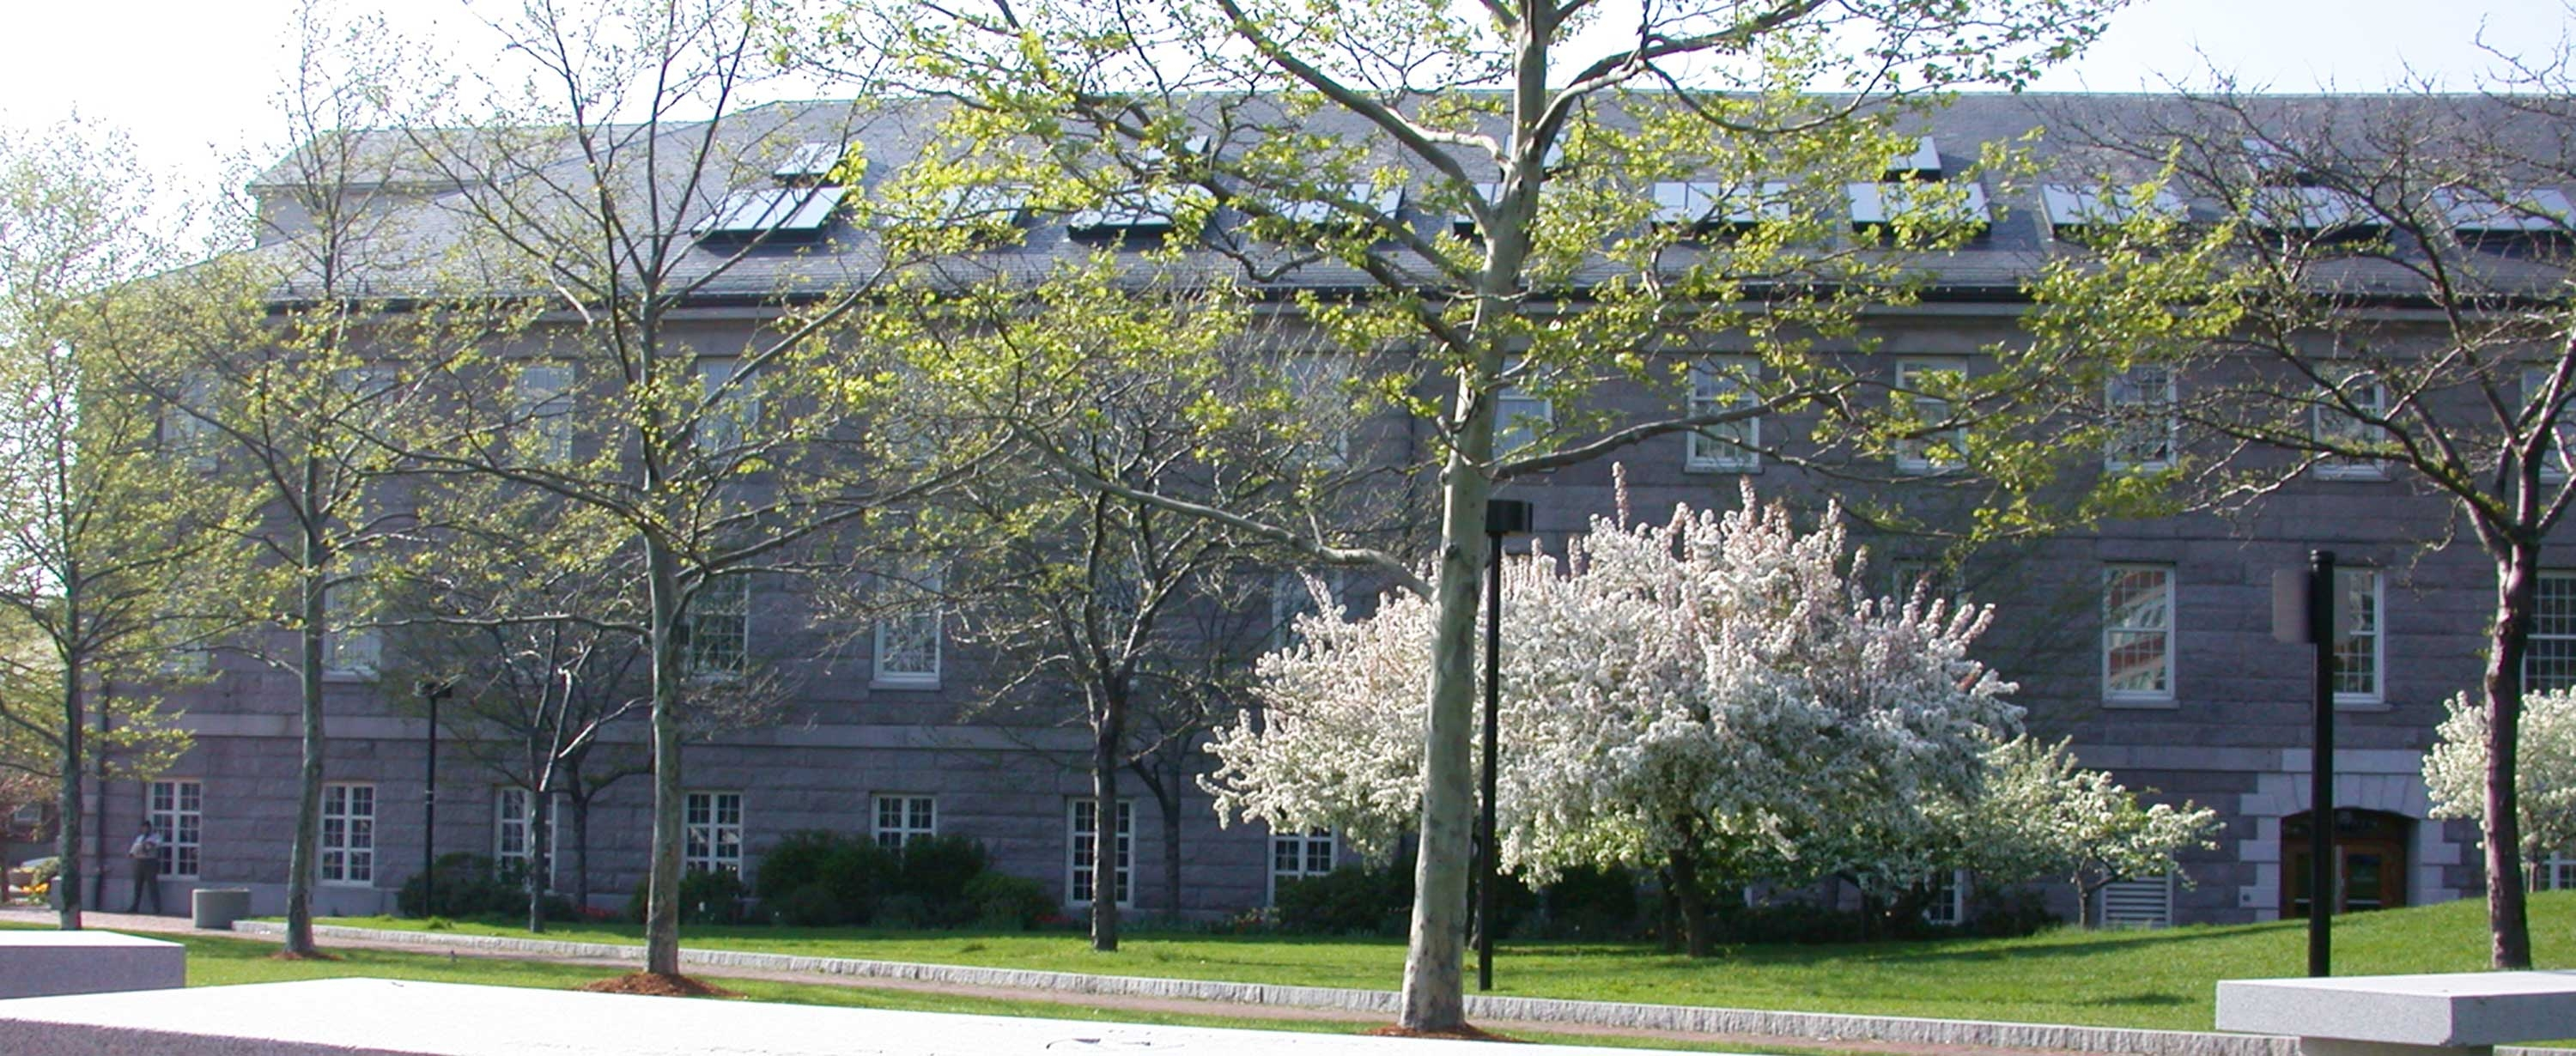 Shouse building in springtime